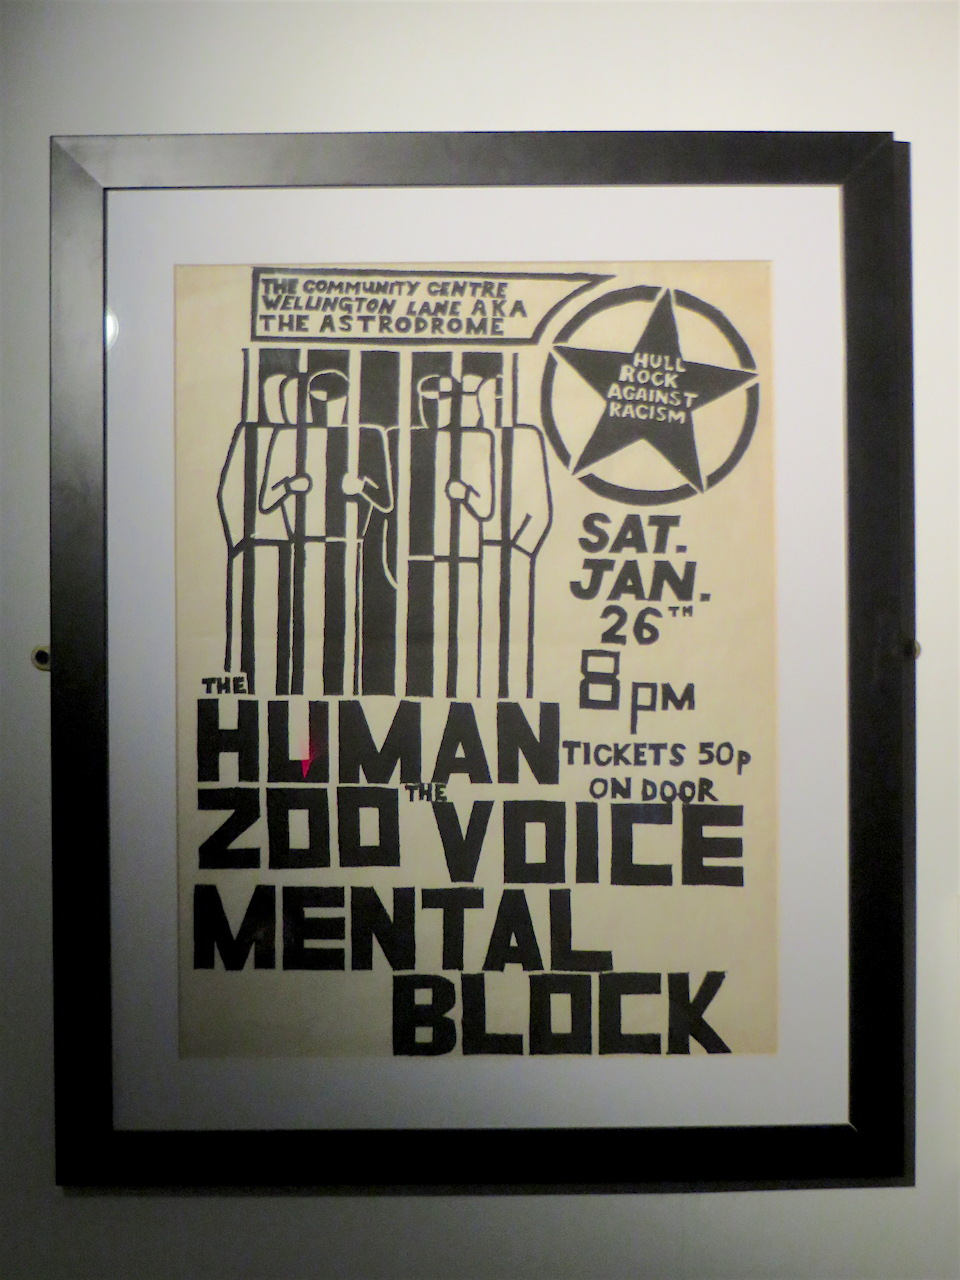 A Rock Against Racism poster from Hull in the late 1970s, from an exhibition at Rich Mix in Shoreditch, London in May 2017 (Photo: Andy Worthington).